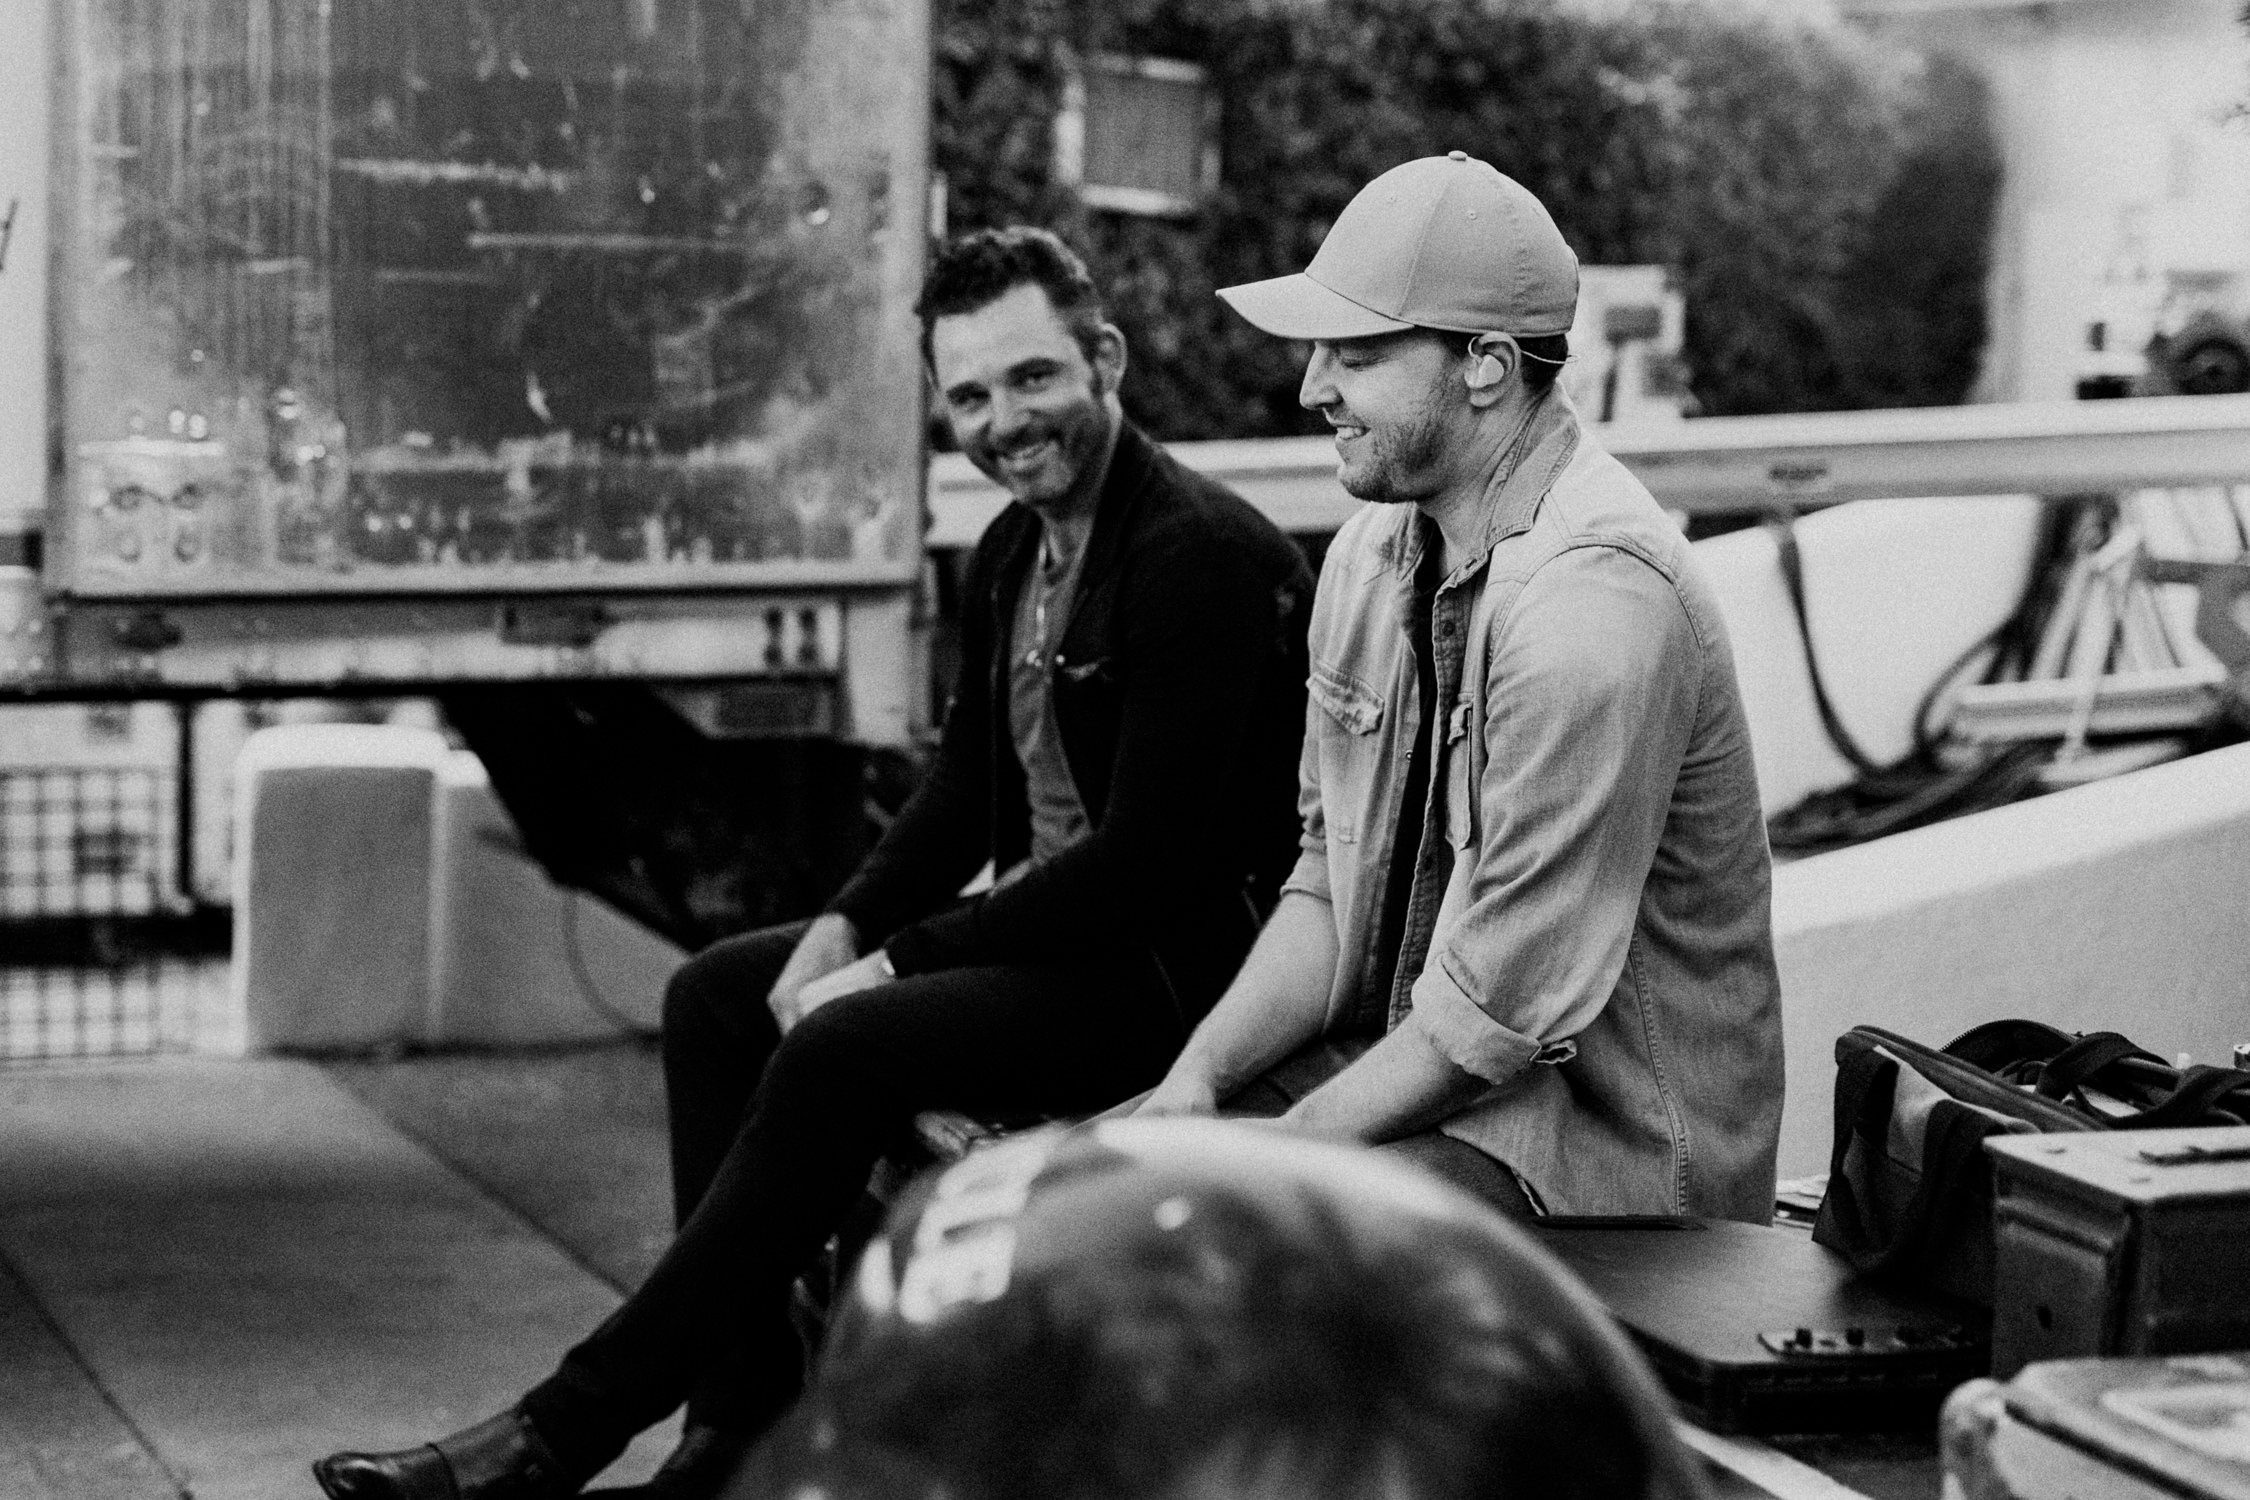 gavin-degraw-michael-baker-backstage-laughing-candid-tour-AnnaLeeMedia